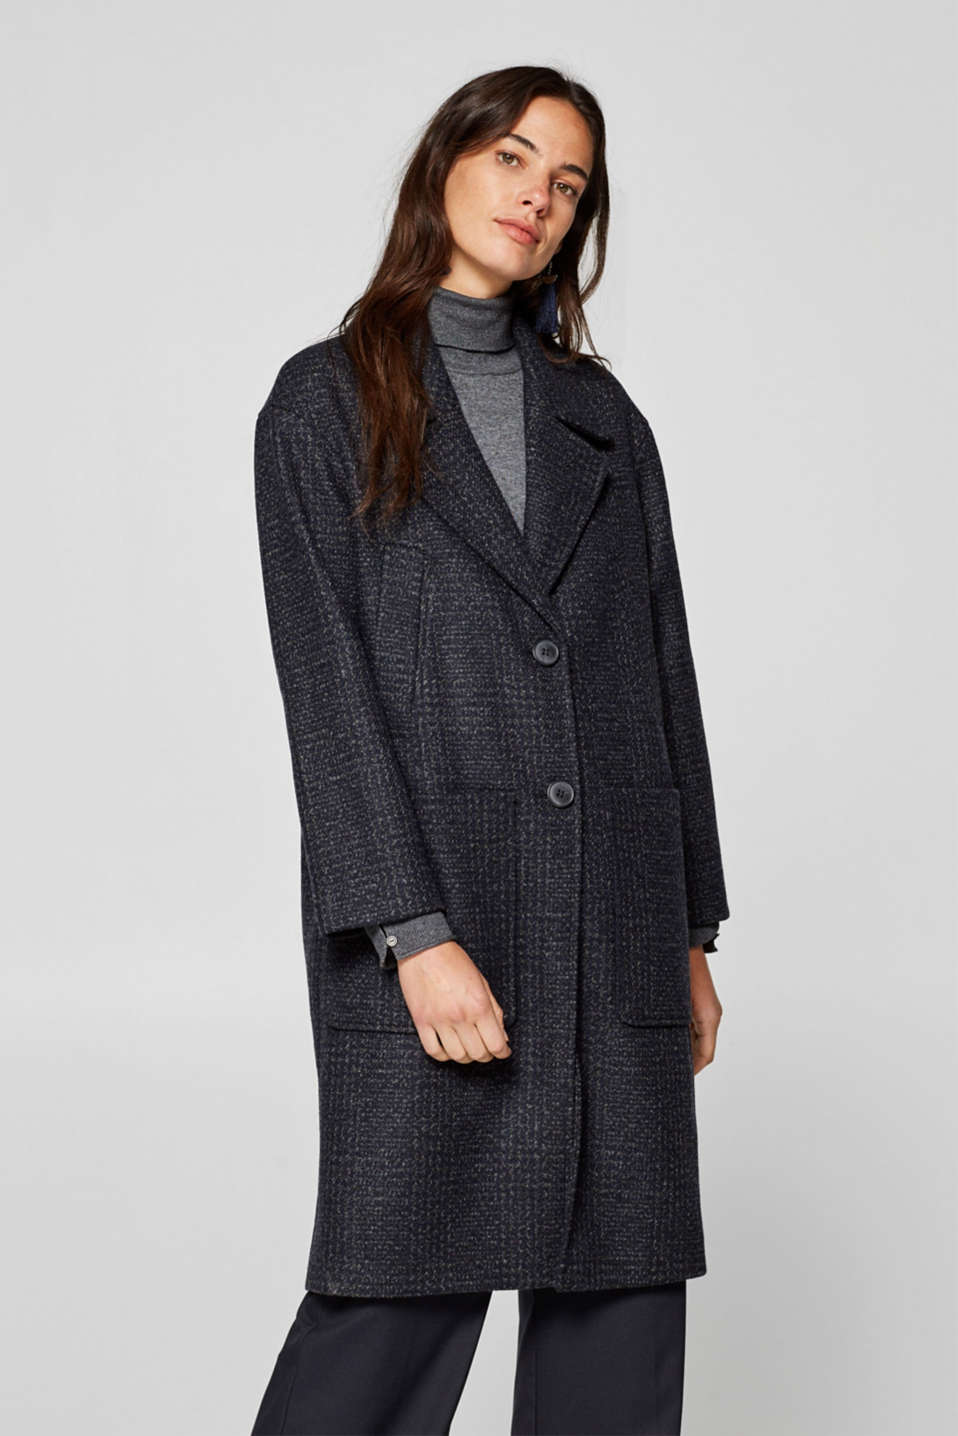 Esprit - Made of blended wool: Coat with subtle check pattern